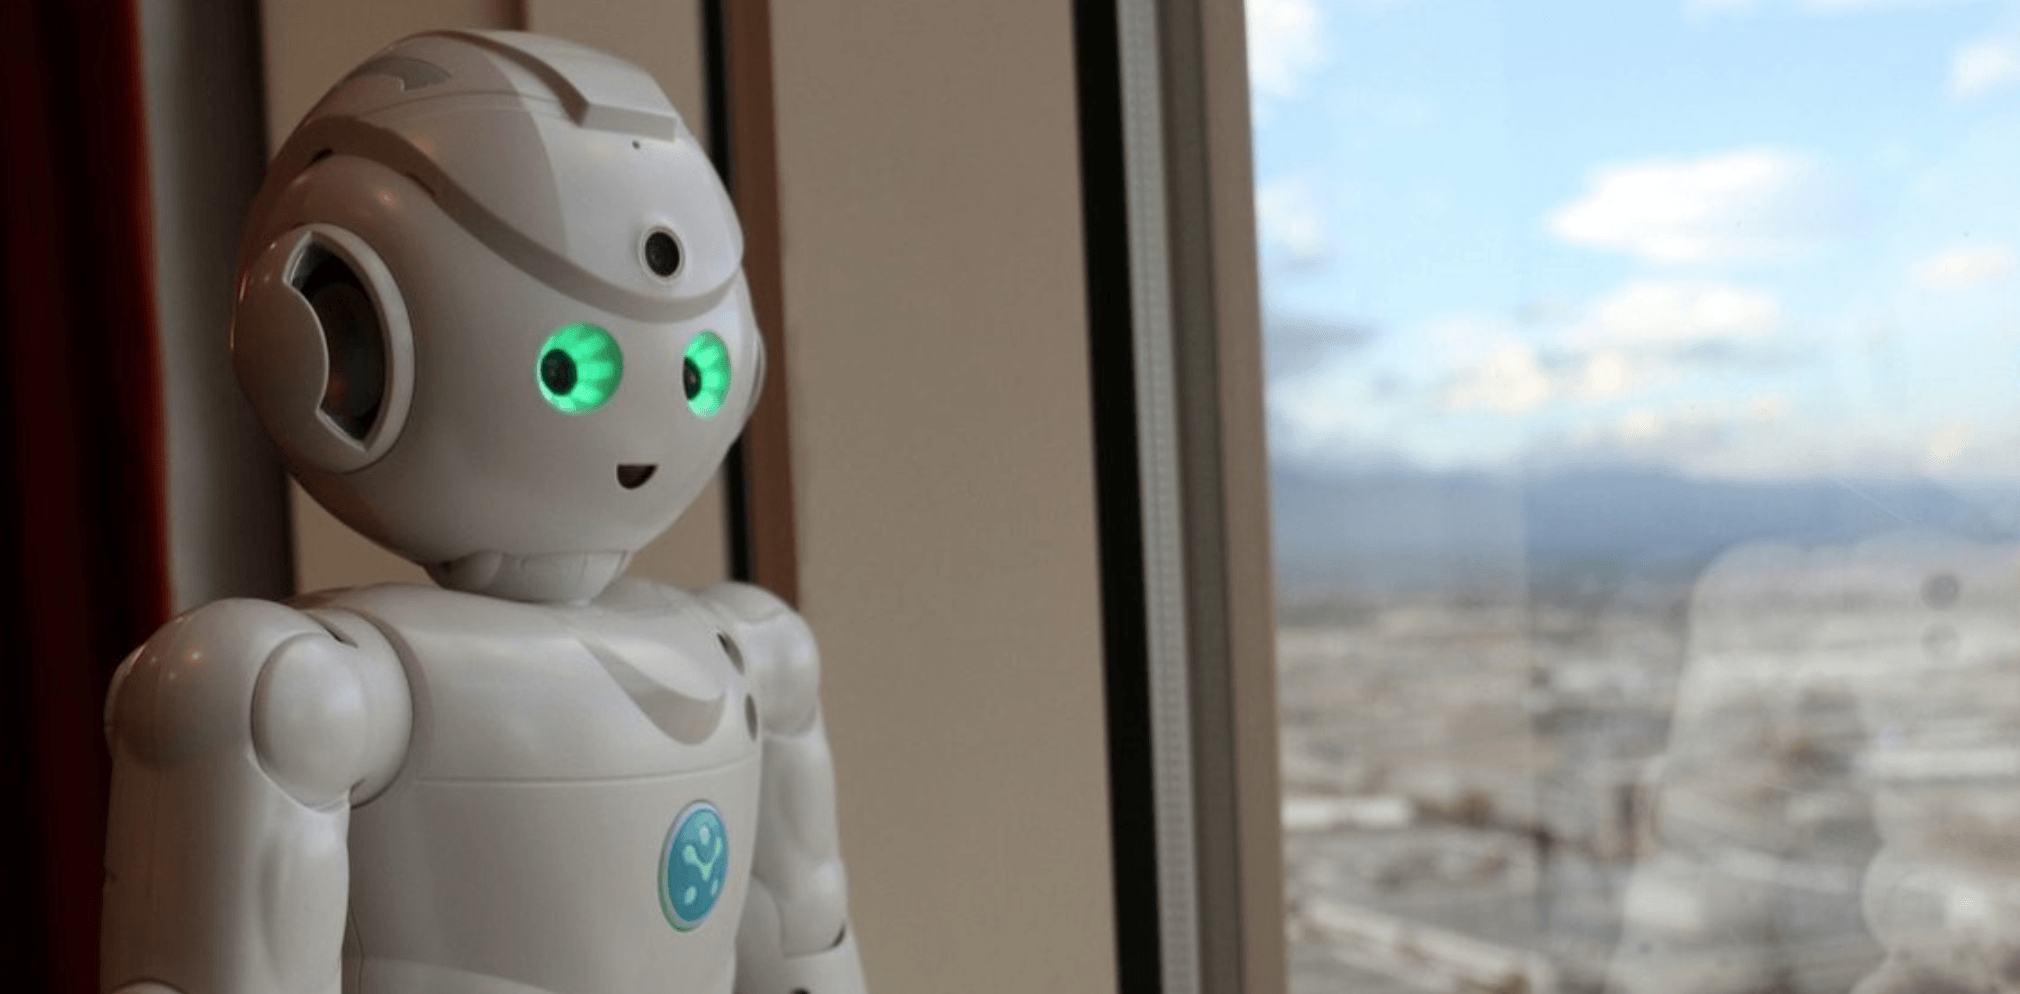 Artificial Intelligence in Home Robots – Current and Future